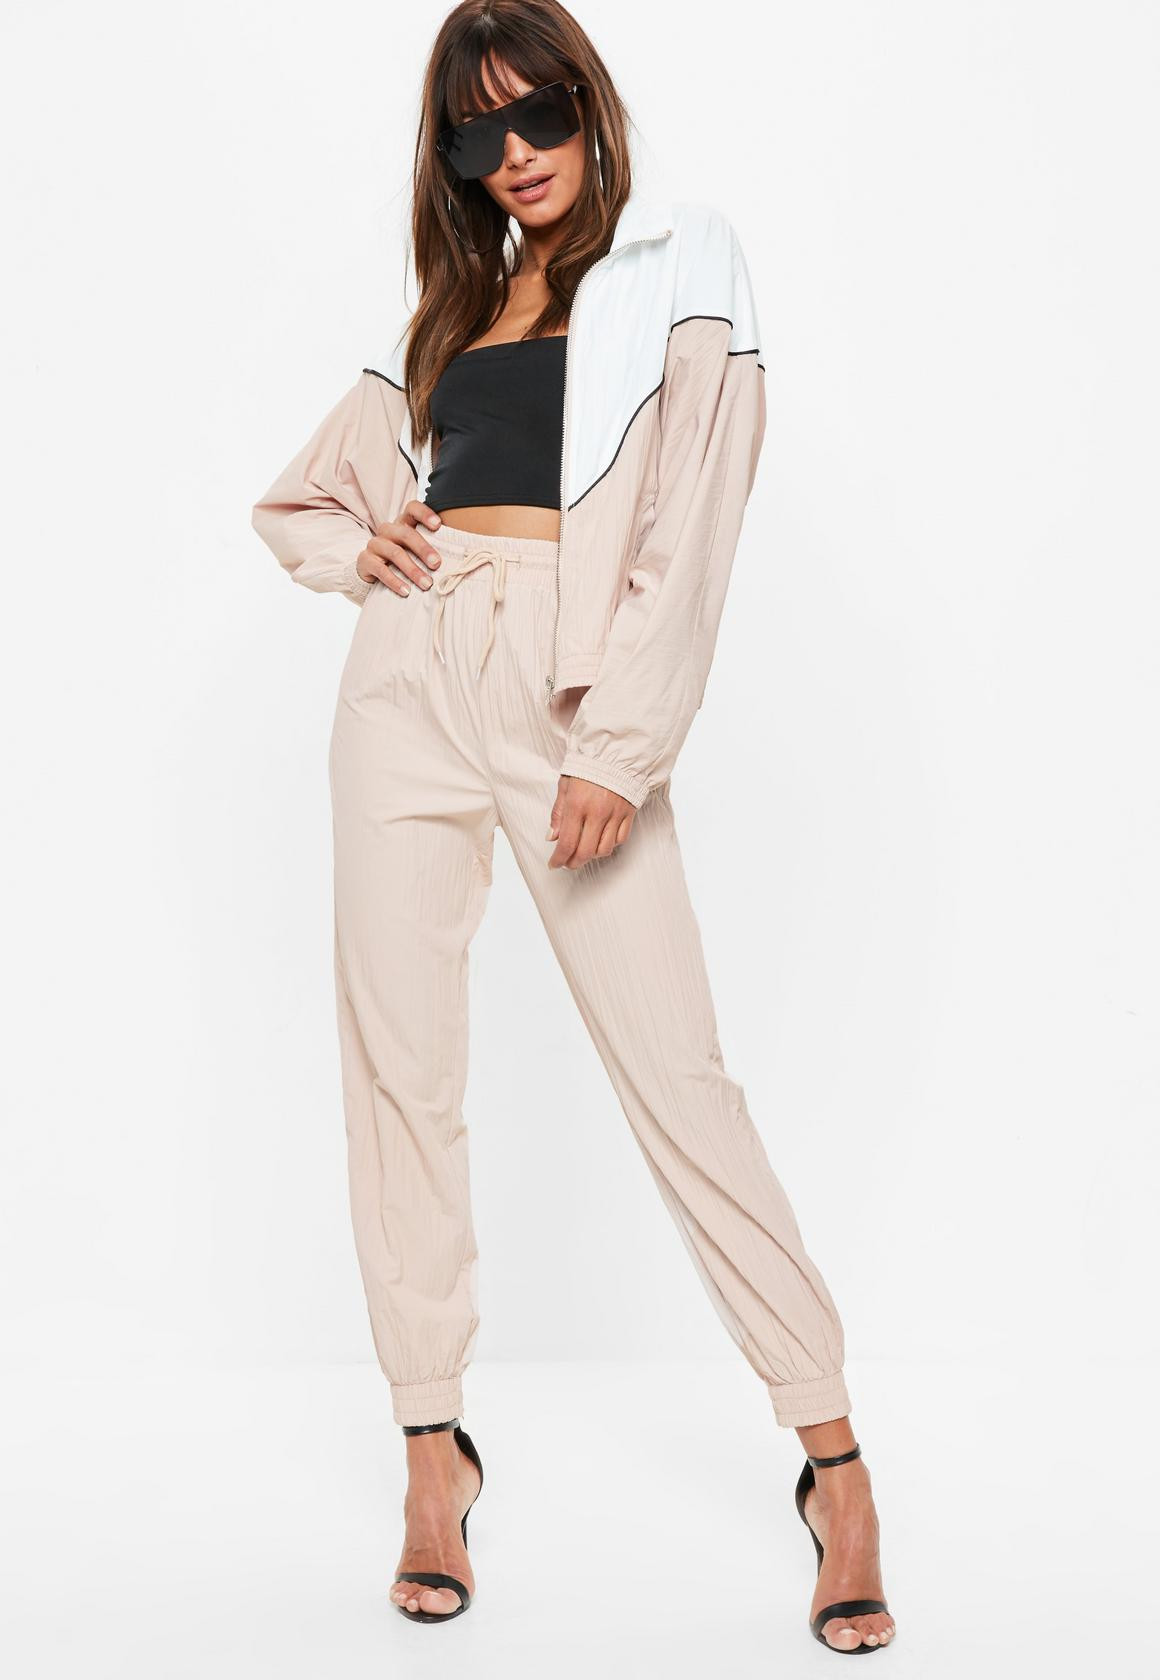 nude-shell-suit-trousers.jpg